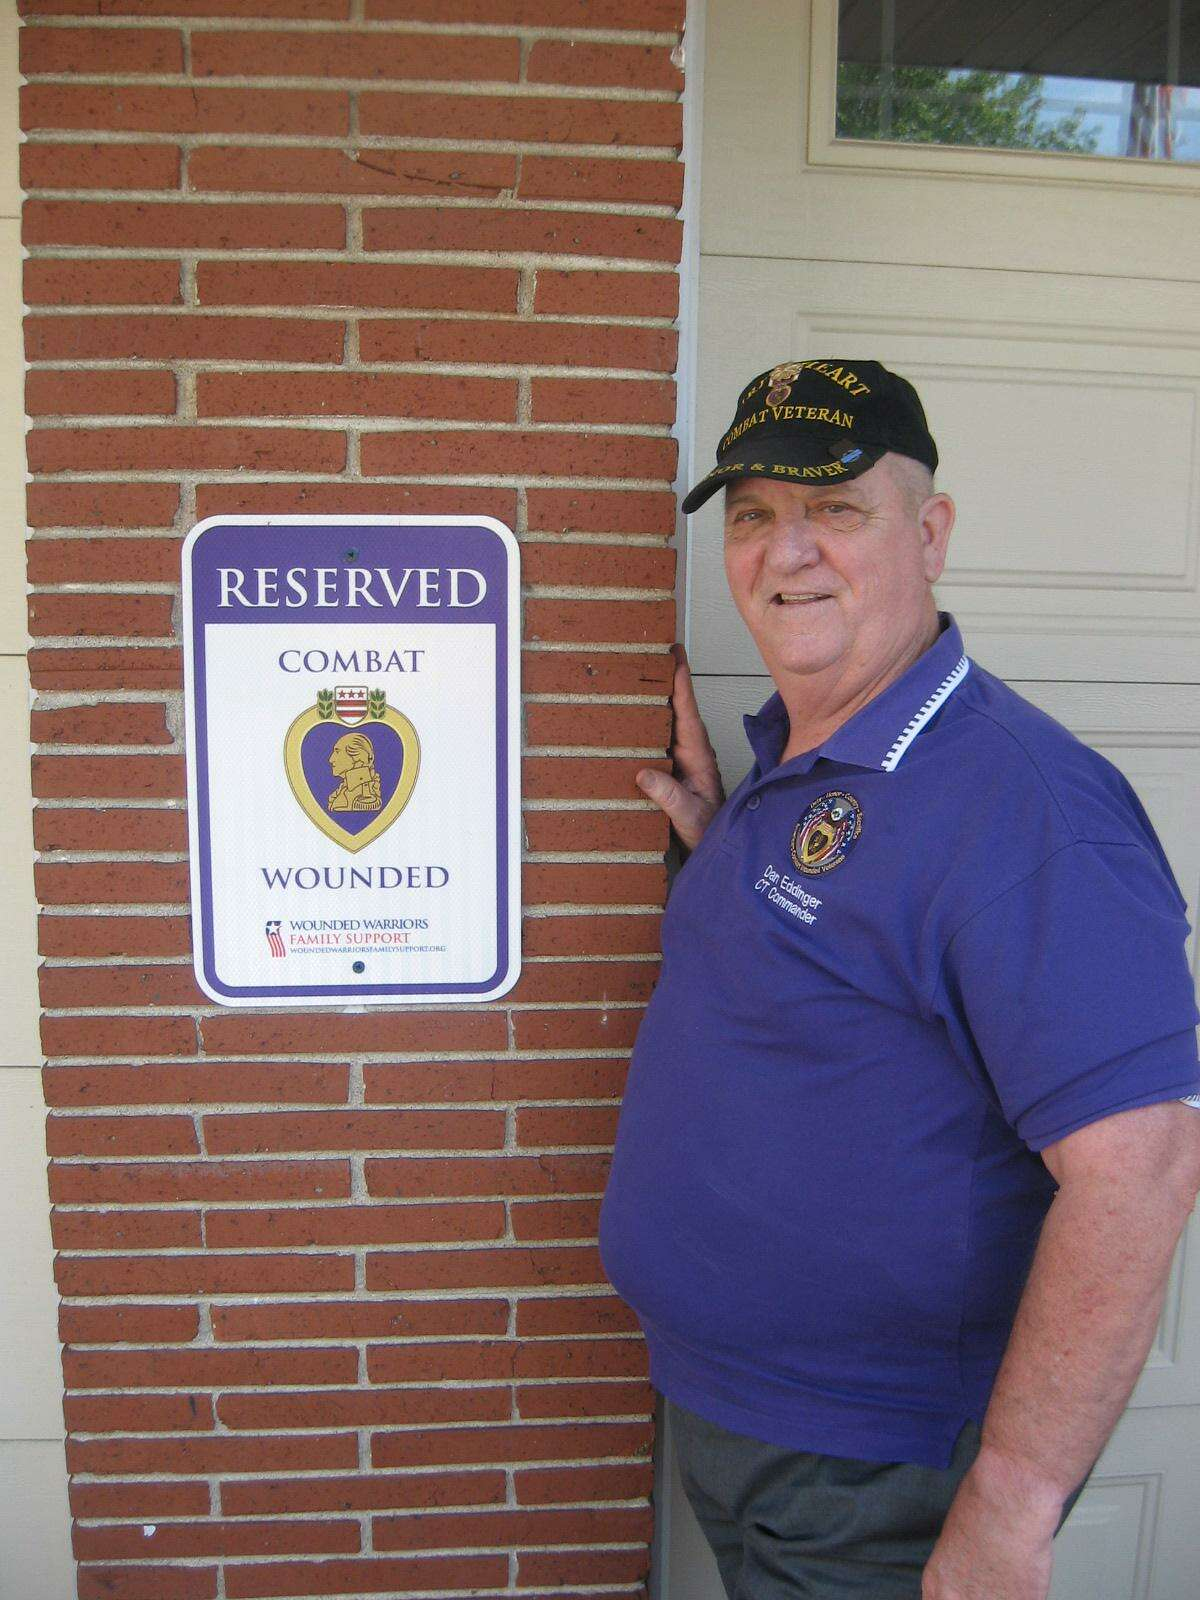 U.S. Army Major Daniel Eddinger (Ret), shows the honorary parking space at Torrington City Hall, reserved for recipients of the Purple Heart Medal.